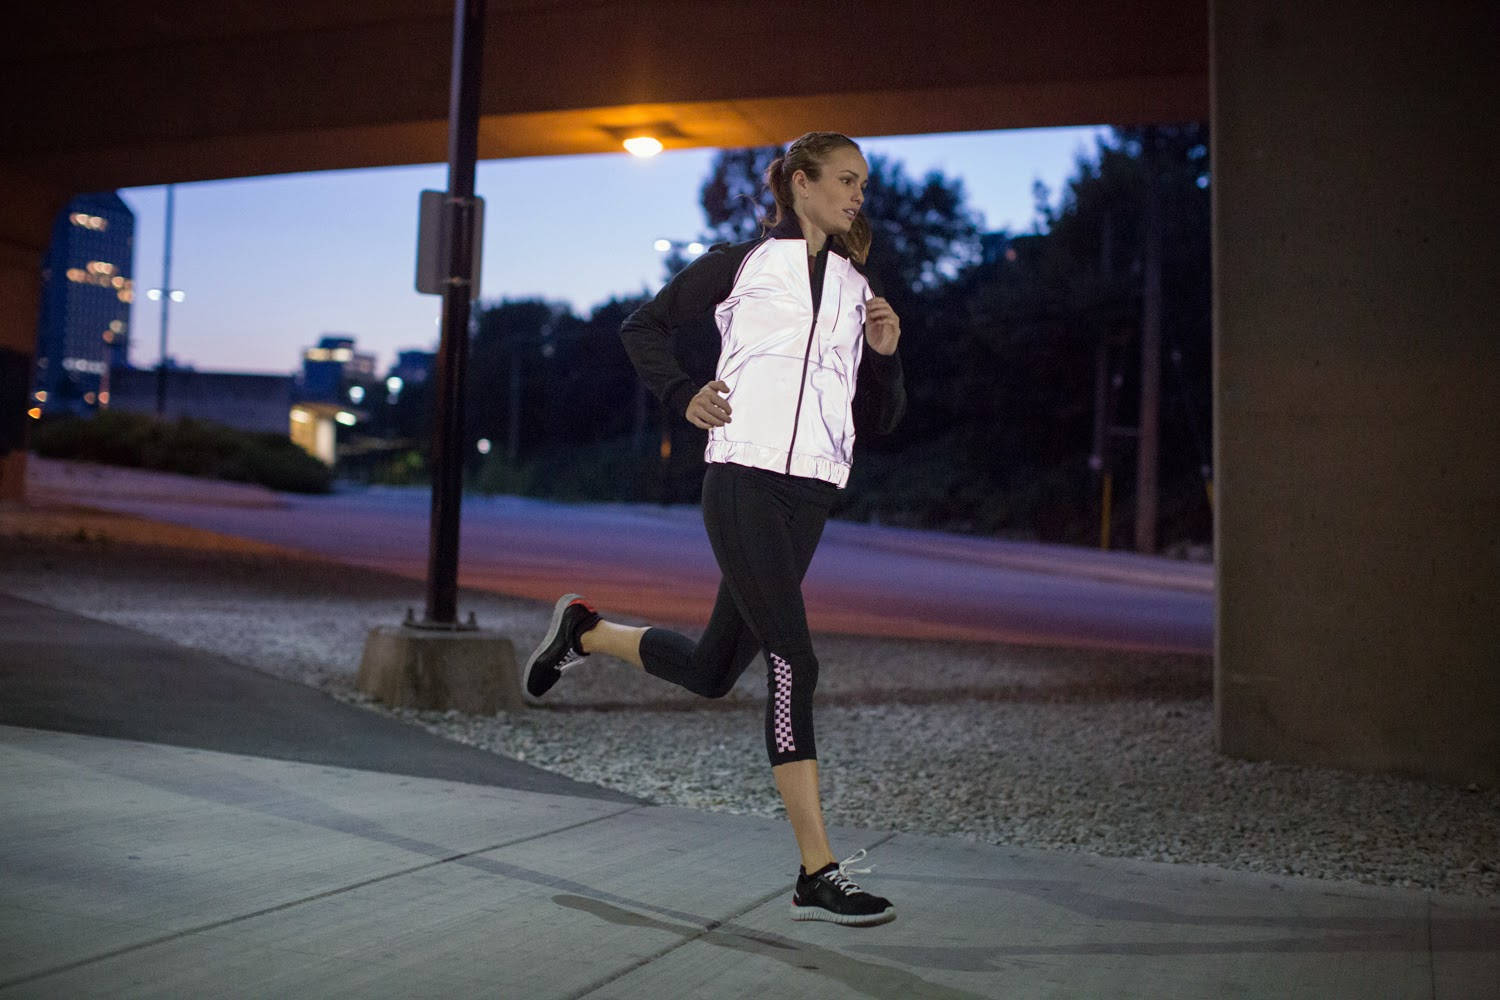 cc6a3889f Beauty By Benz: Body By Benz: Lululemon's new line of reflective gear